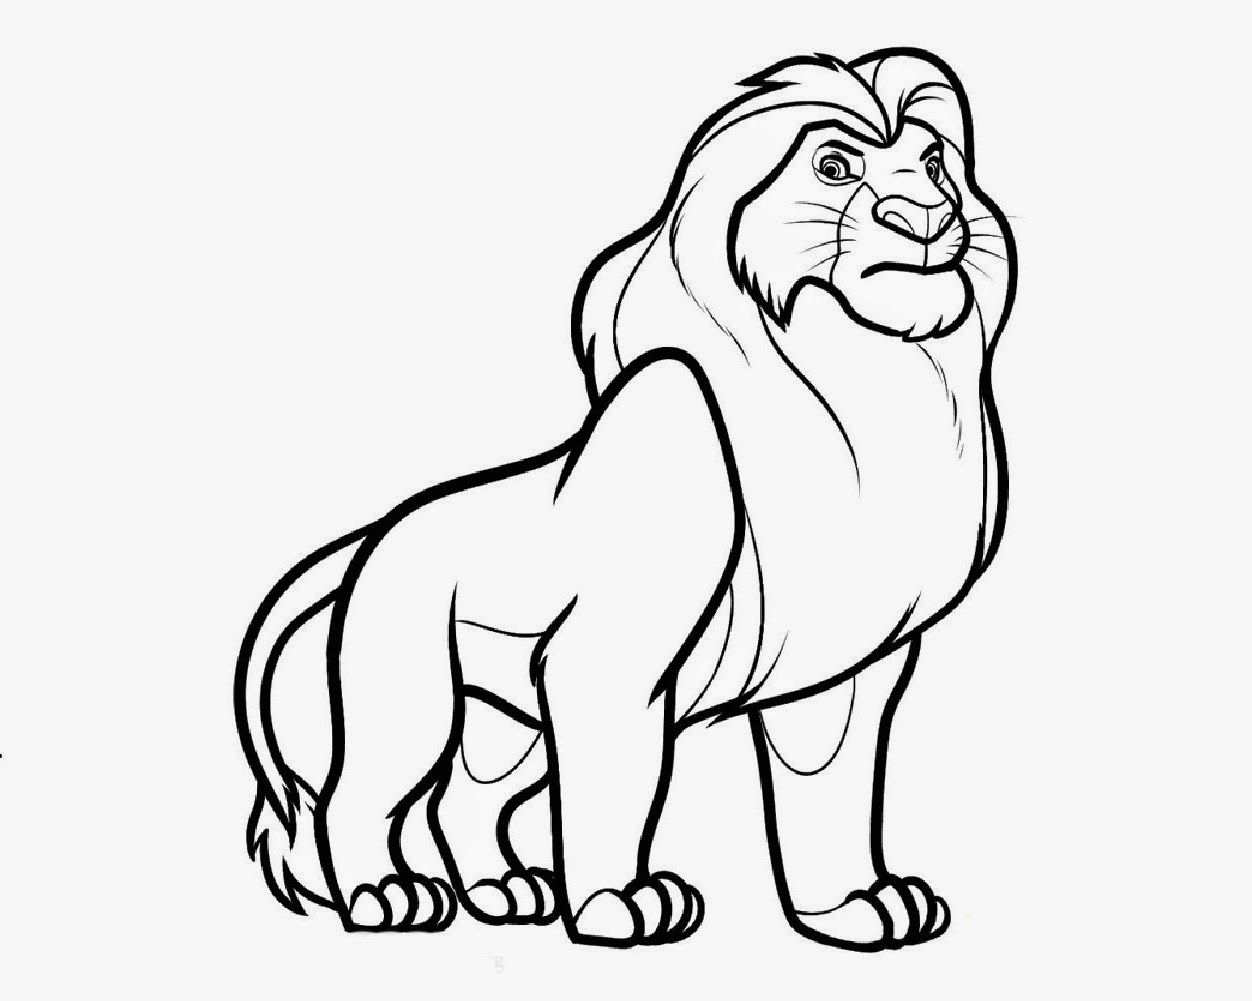 Easy Cartoon Drawings Of Animals Lion Coloring Pages Lion King Drawings Animal Coloring Pages